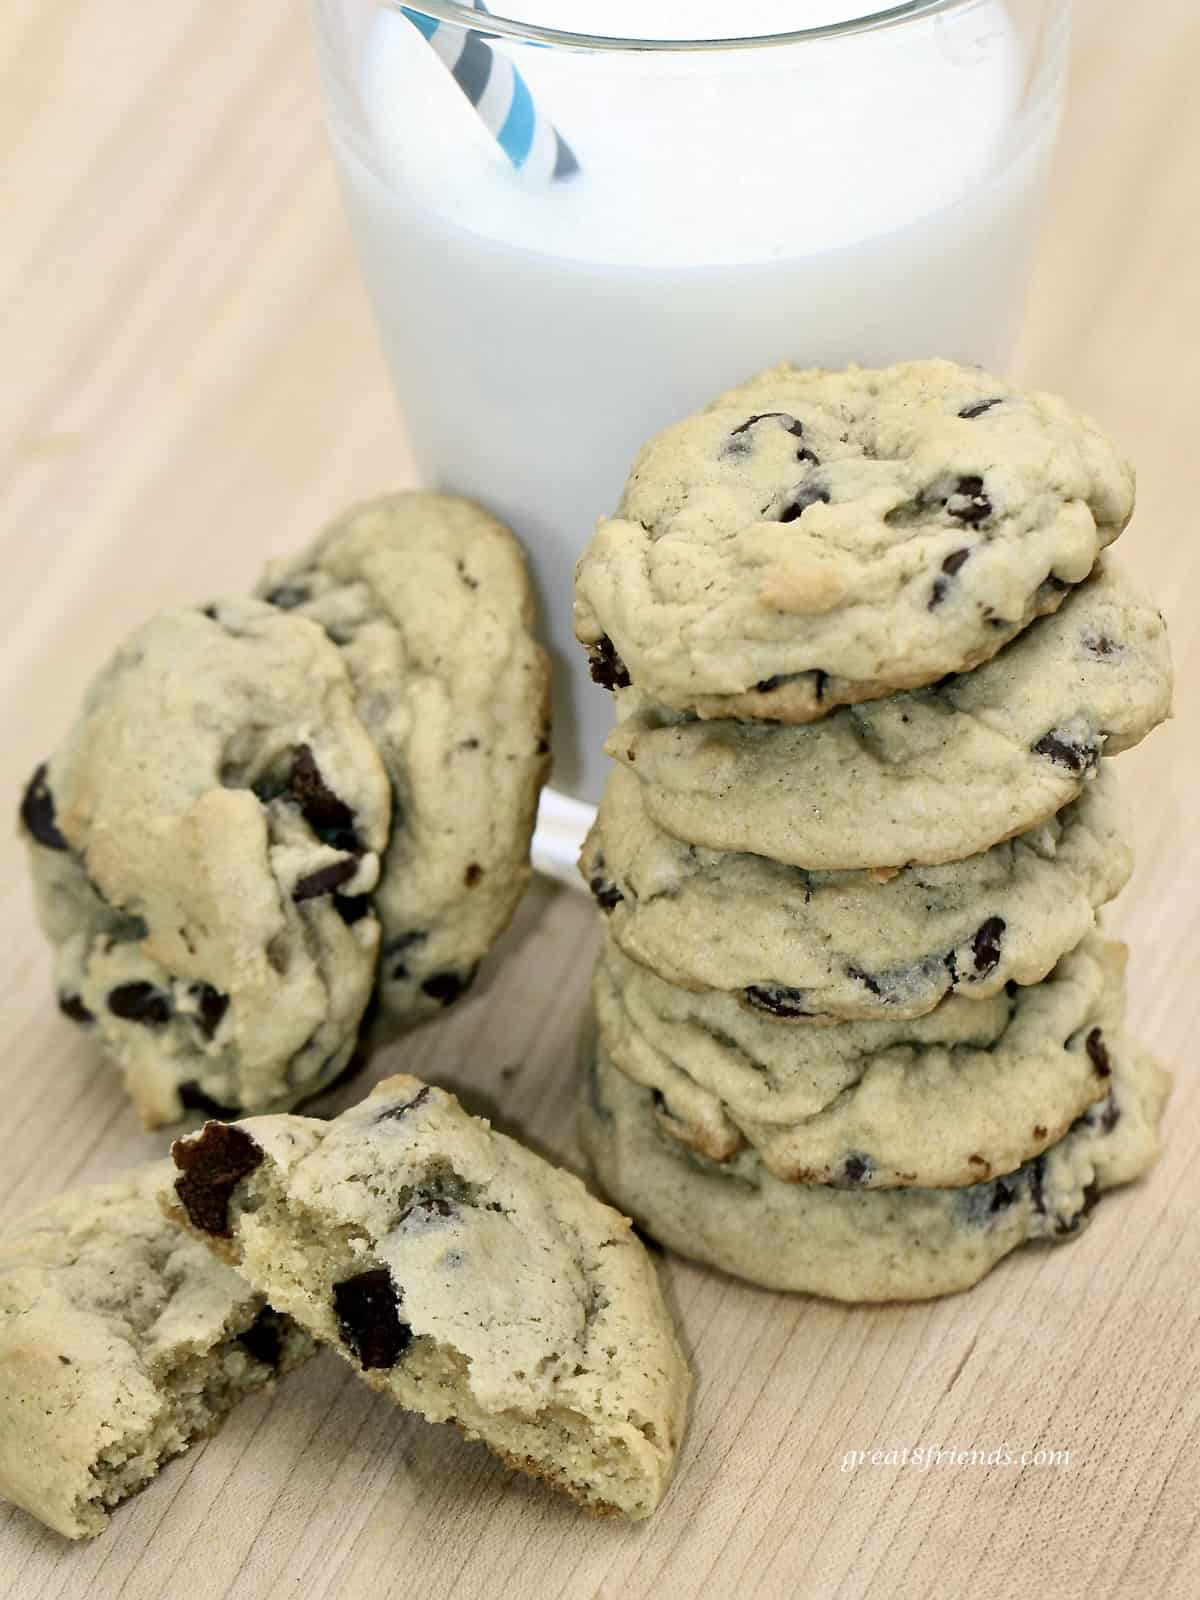 Chocolate chip cookies stacked on each other in front of a glass of milk.